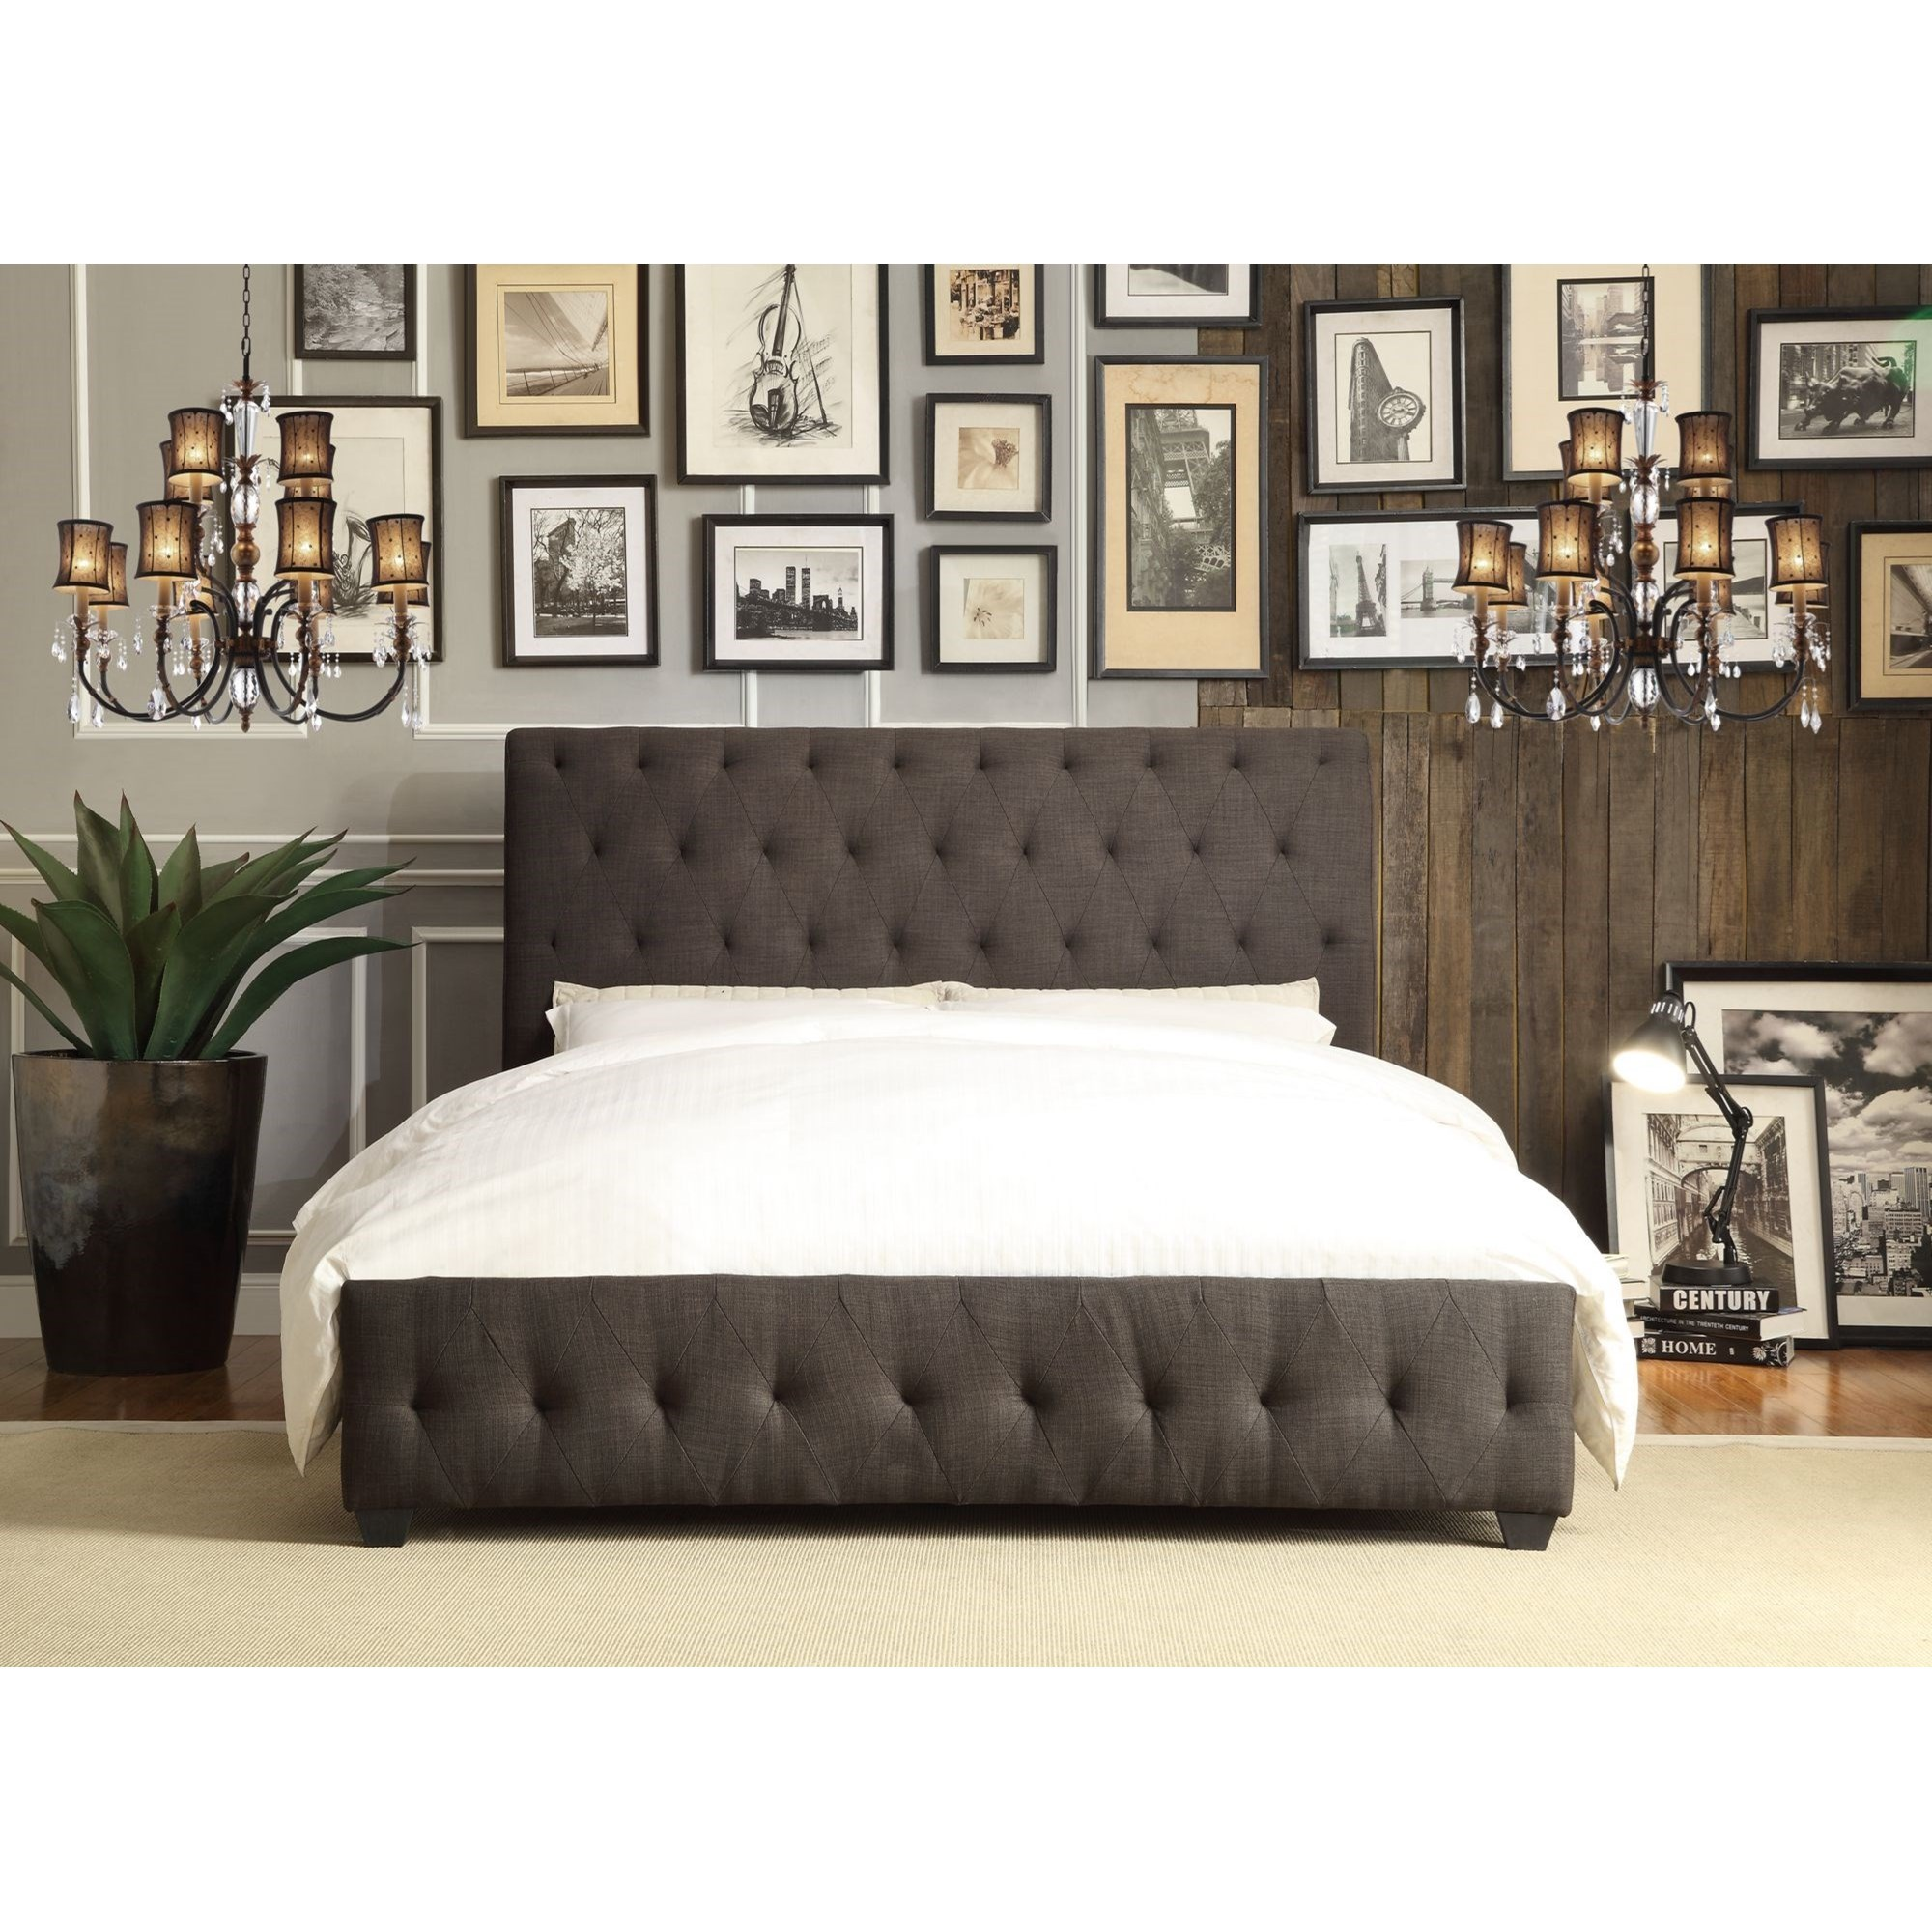 Homelegance Baldwyn Contemporary Full Upholstered Platform Bed - Item Number: 5789FN-1+3